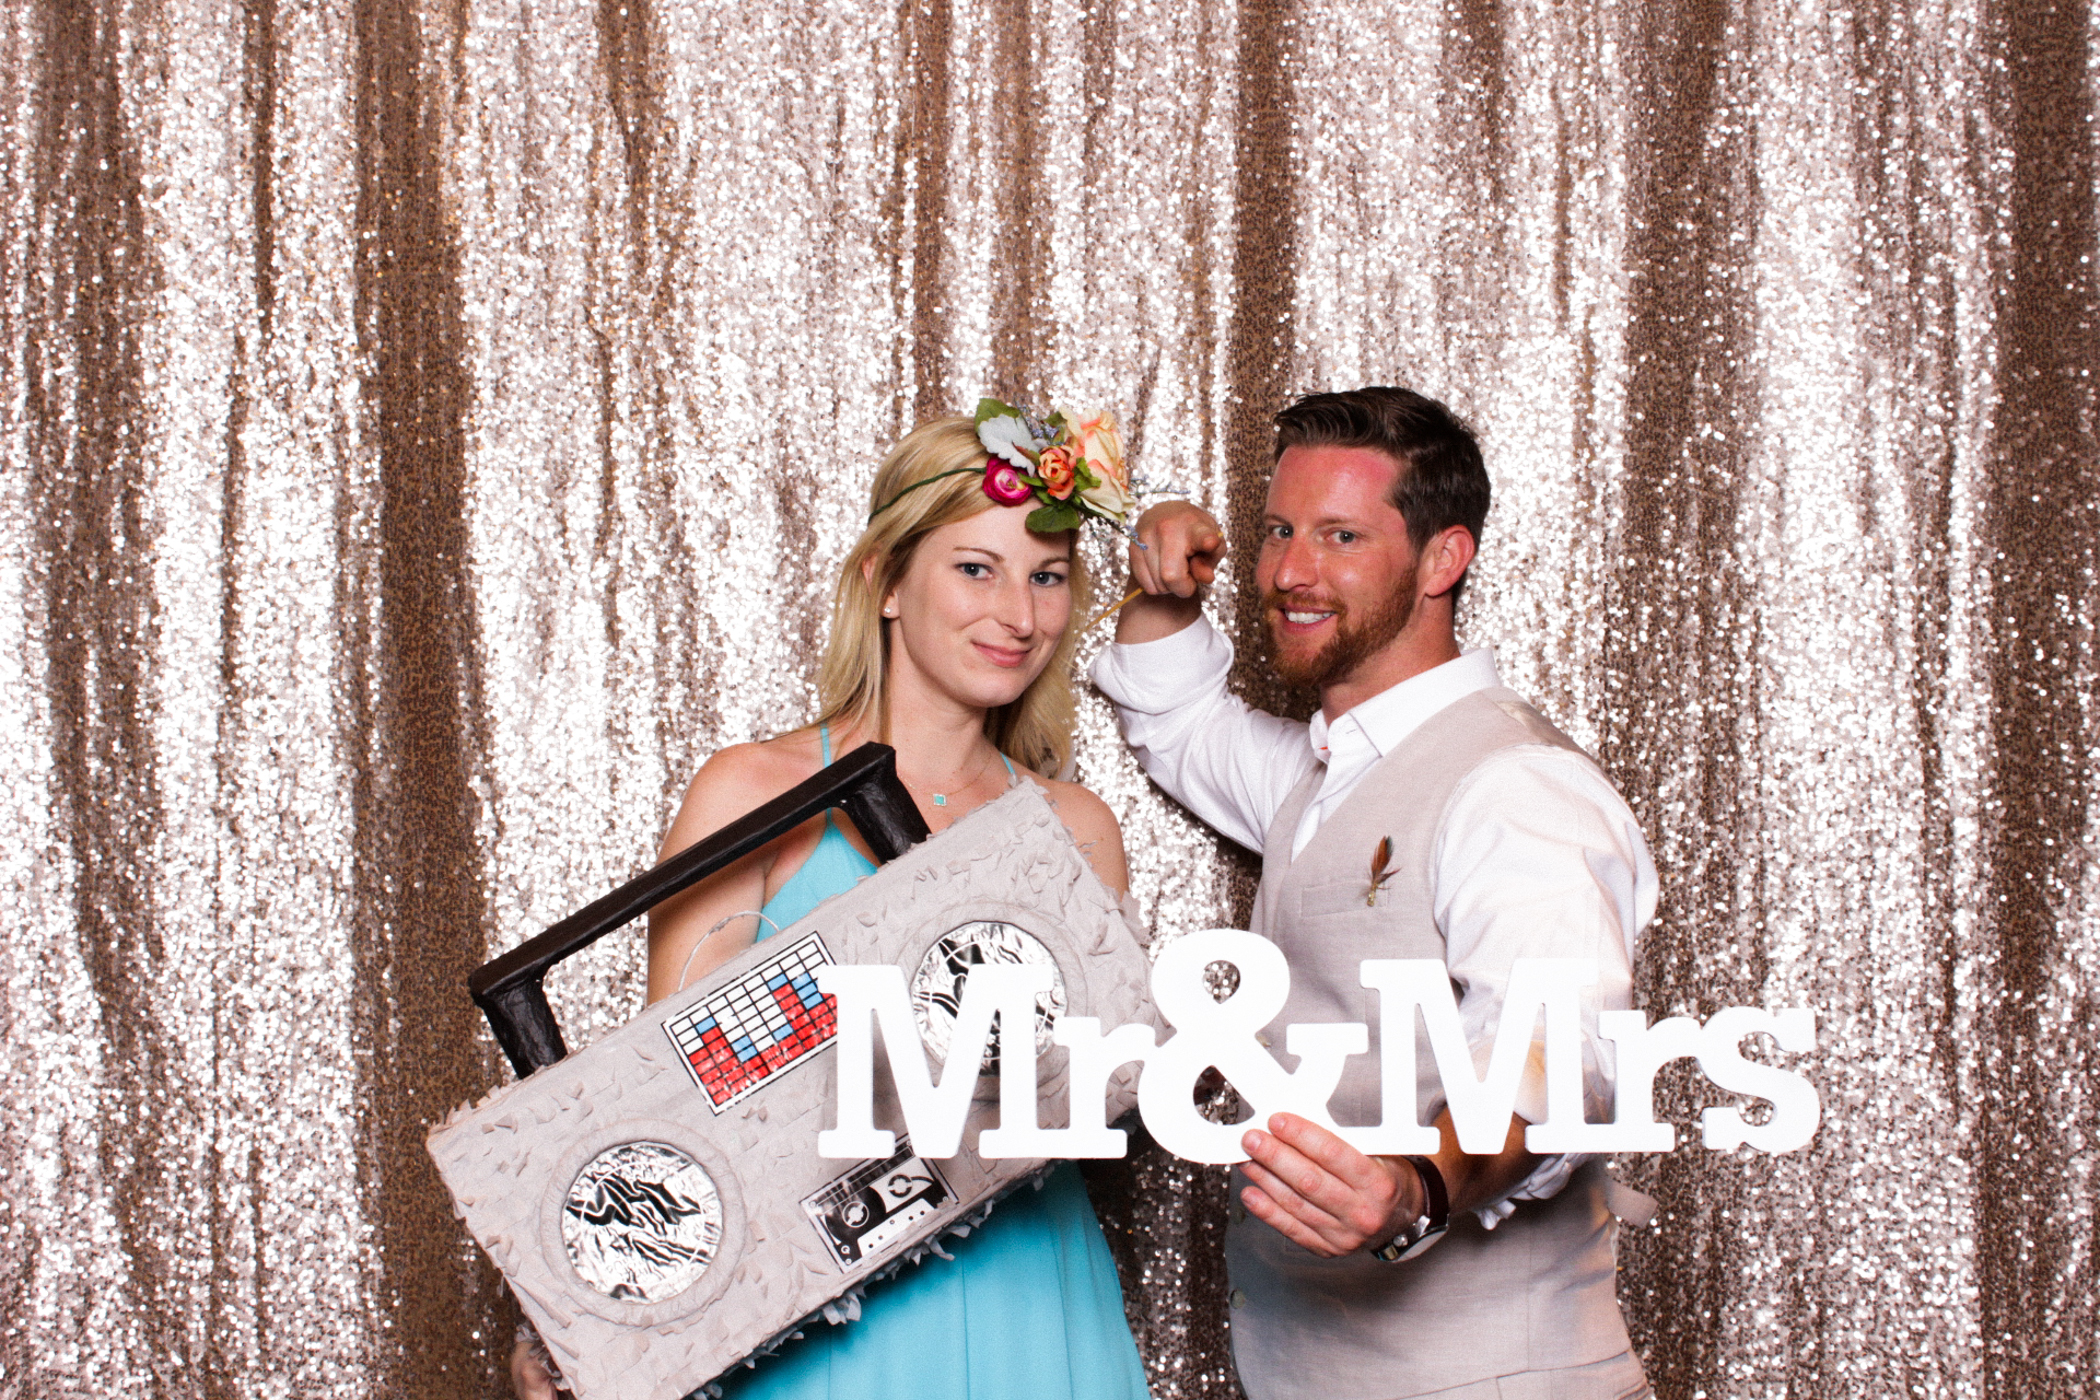 The_Reverie_Booth-Boca_Raton_Photobooth-Wedding_Photobooth_Florida-Florida_Photobooth_Rental-Wedding_Photobooth-063.jpg